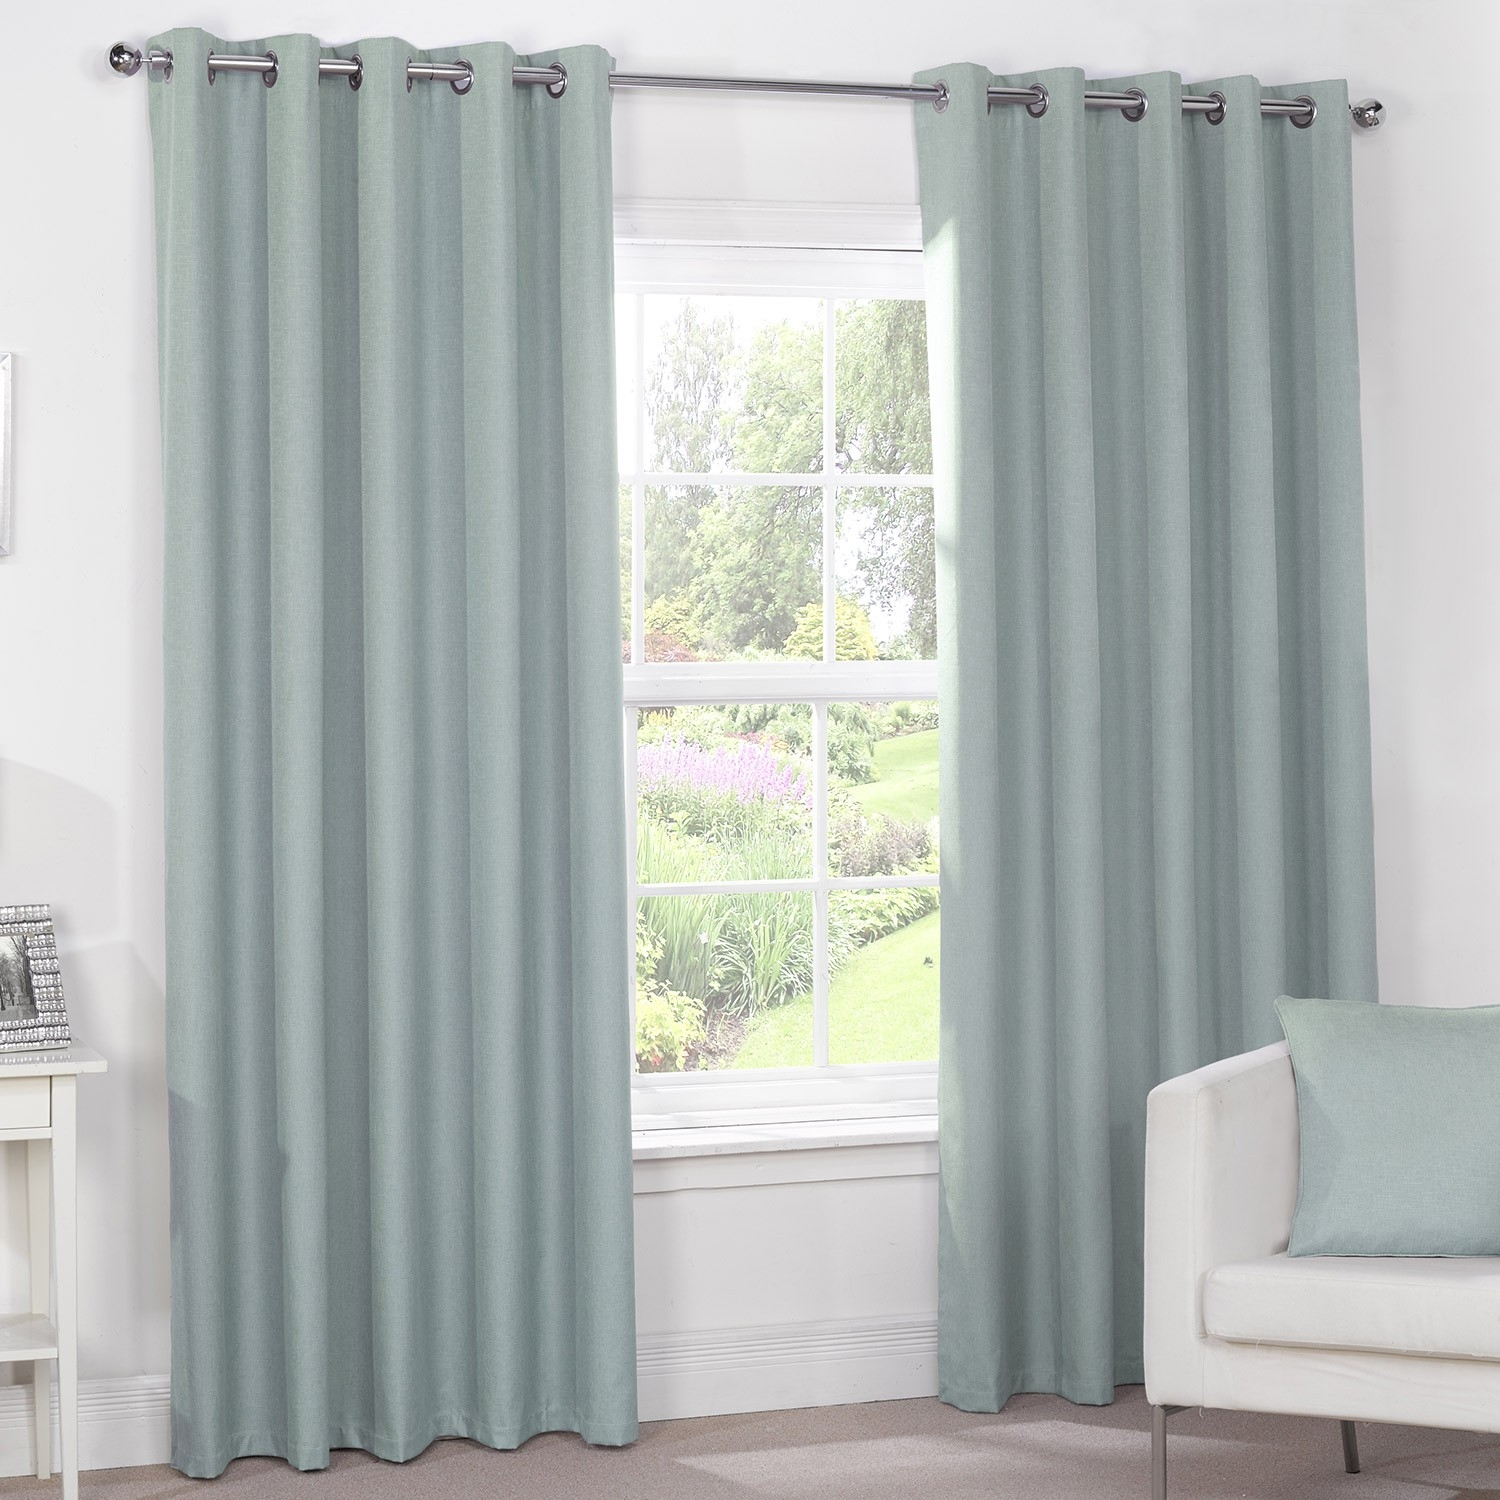 Luna Duck Egg Luxury Blackout Eyelet Curtains Pair Julian Charles Inside Duck Egg Blue Blackout Curtains (Image 11 of 15)